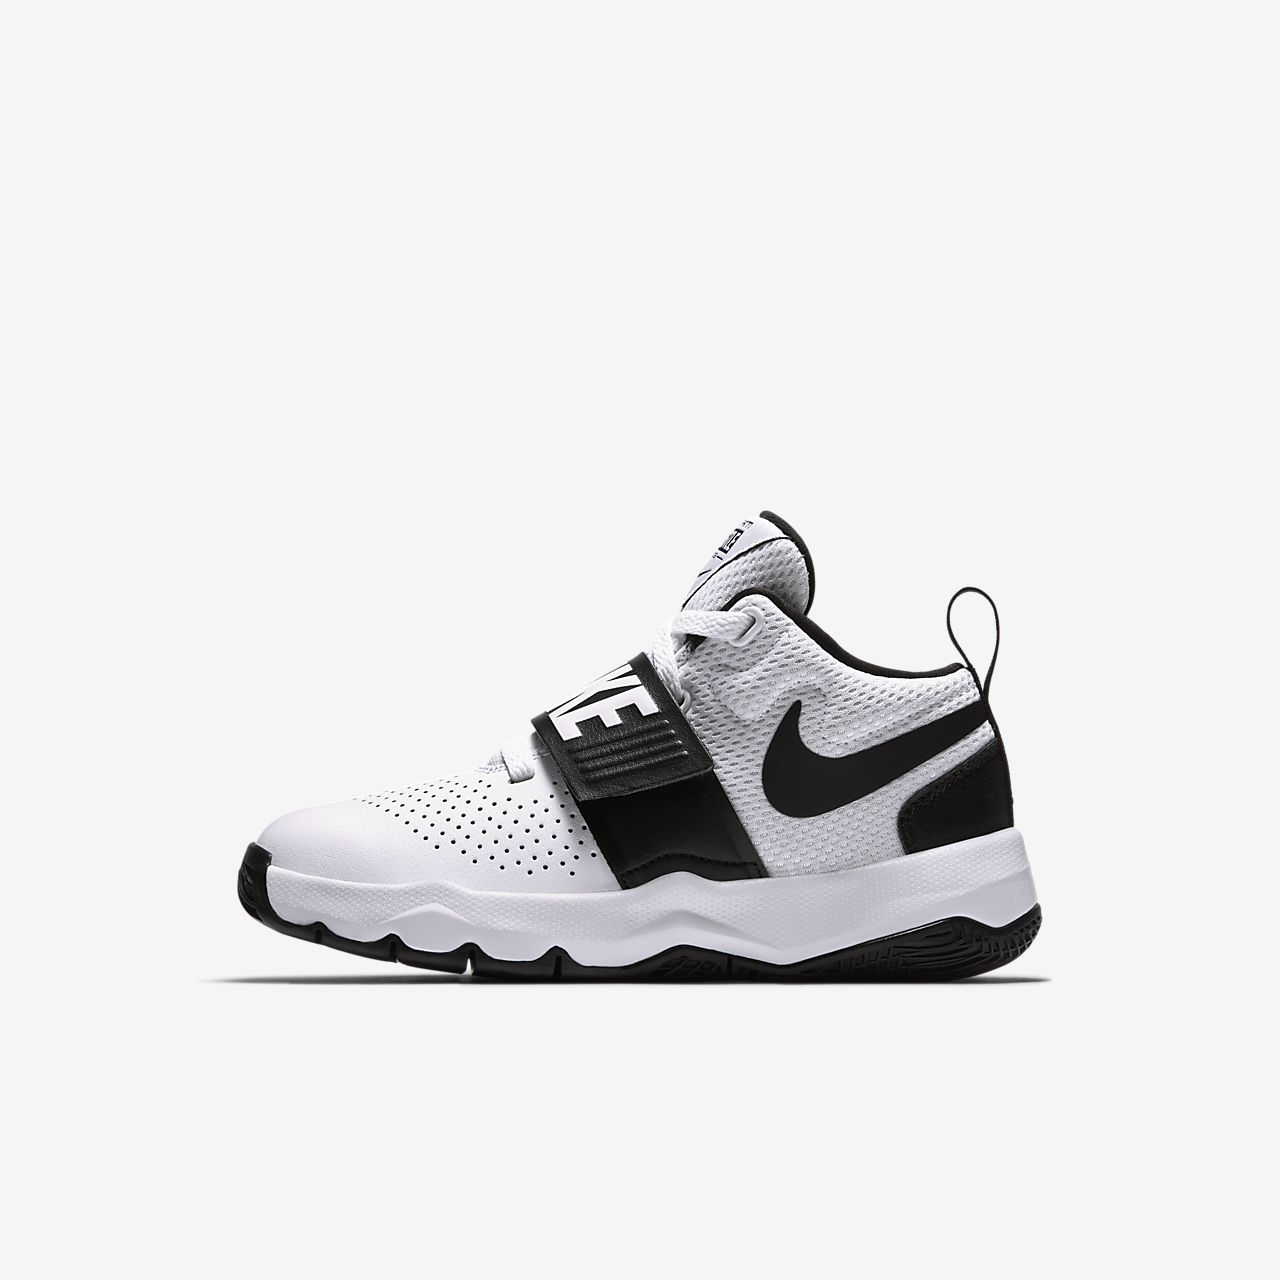 201910427da3 Nike Team Hustle D 8 Younger Kids  Basketball Shoe. Nike.com CA